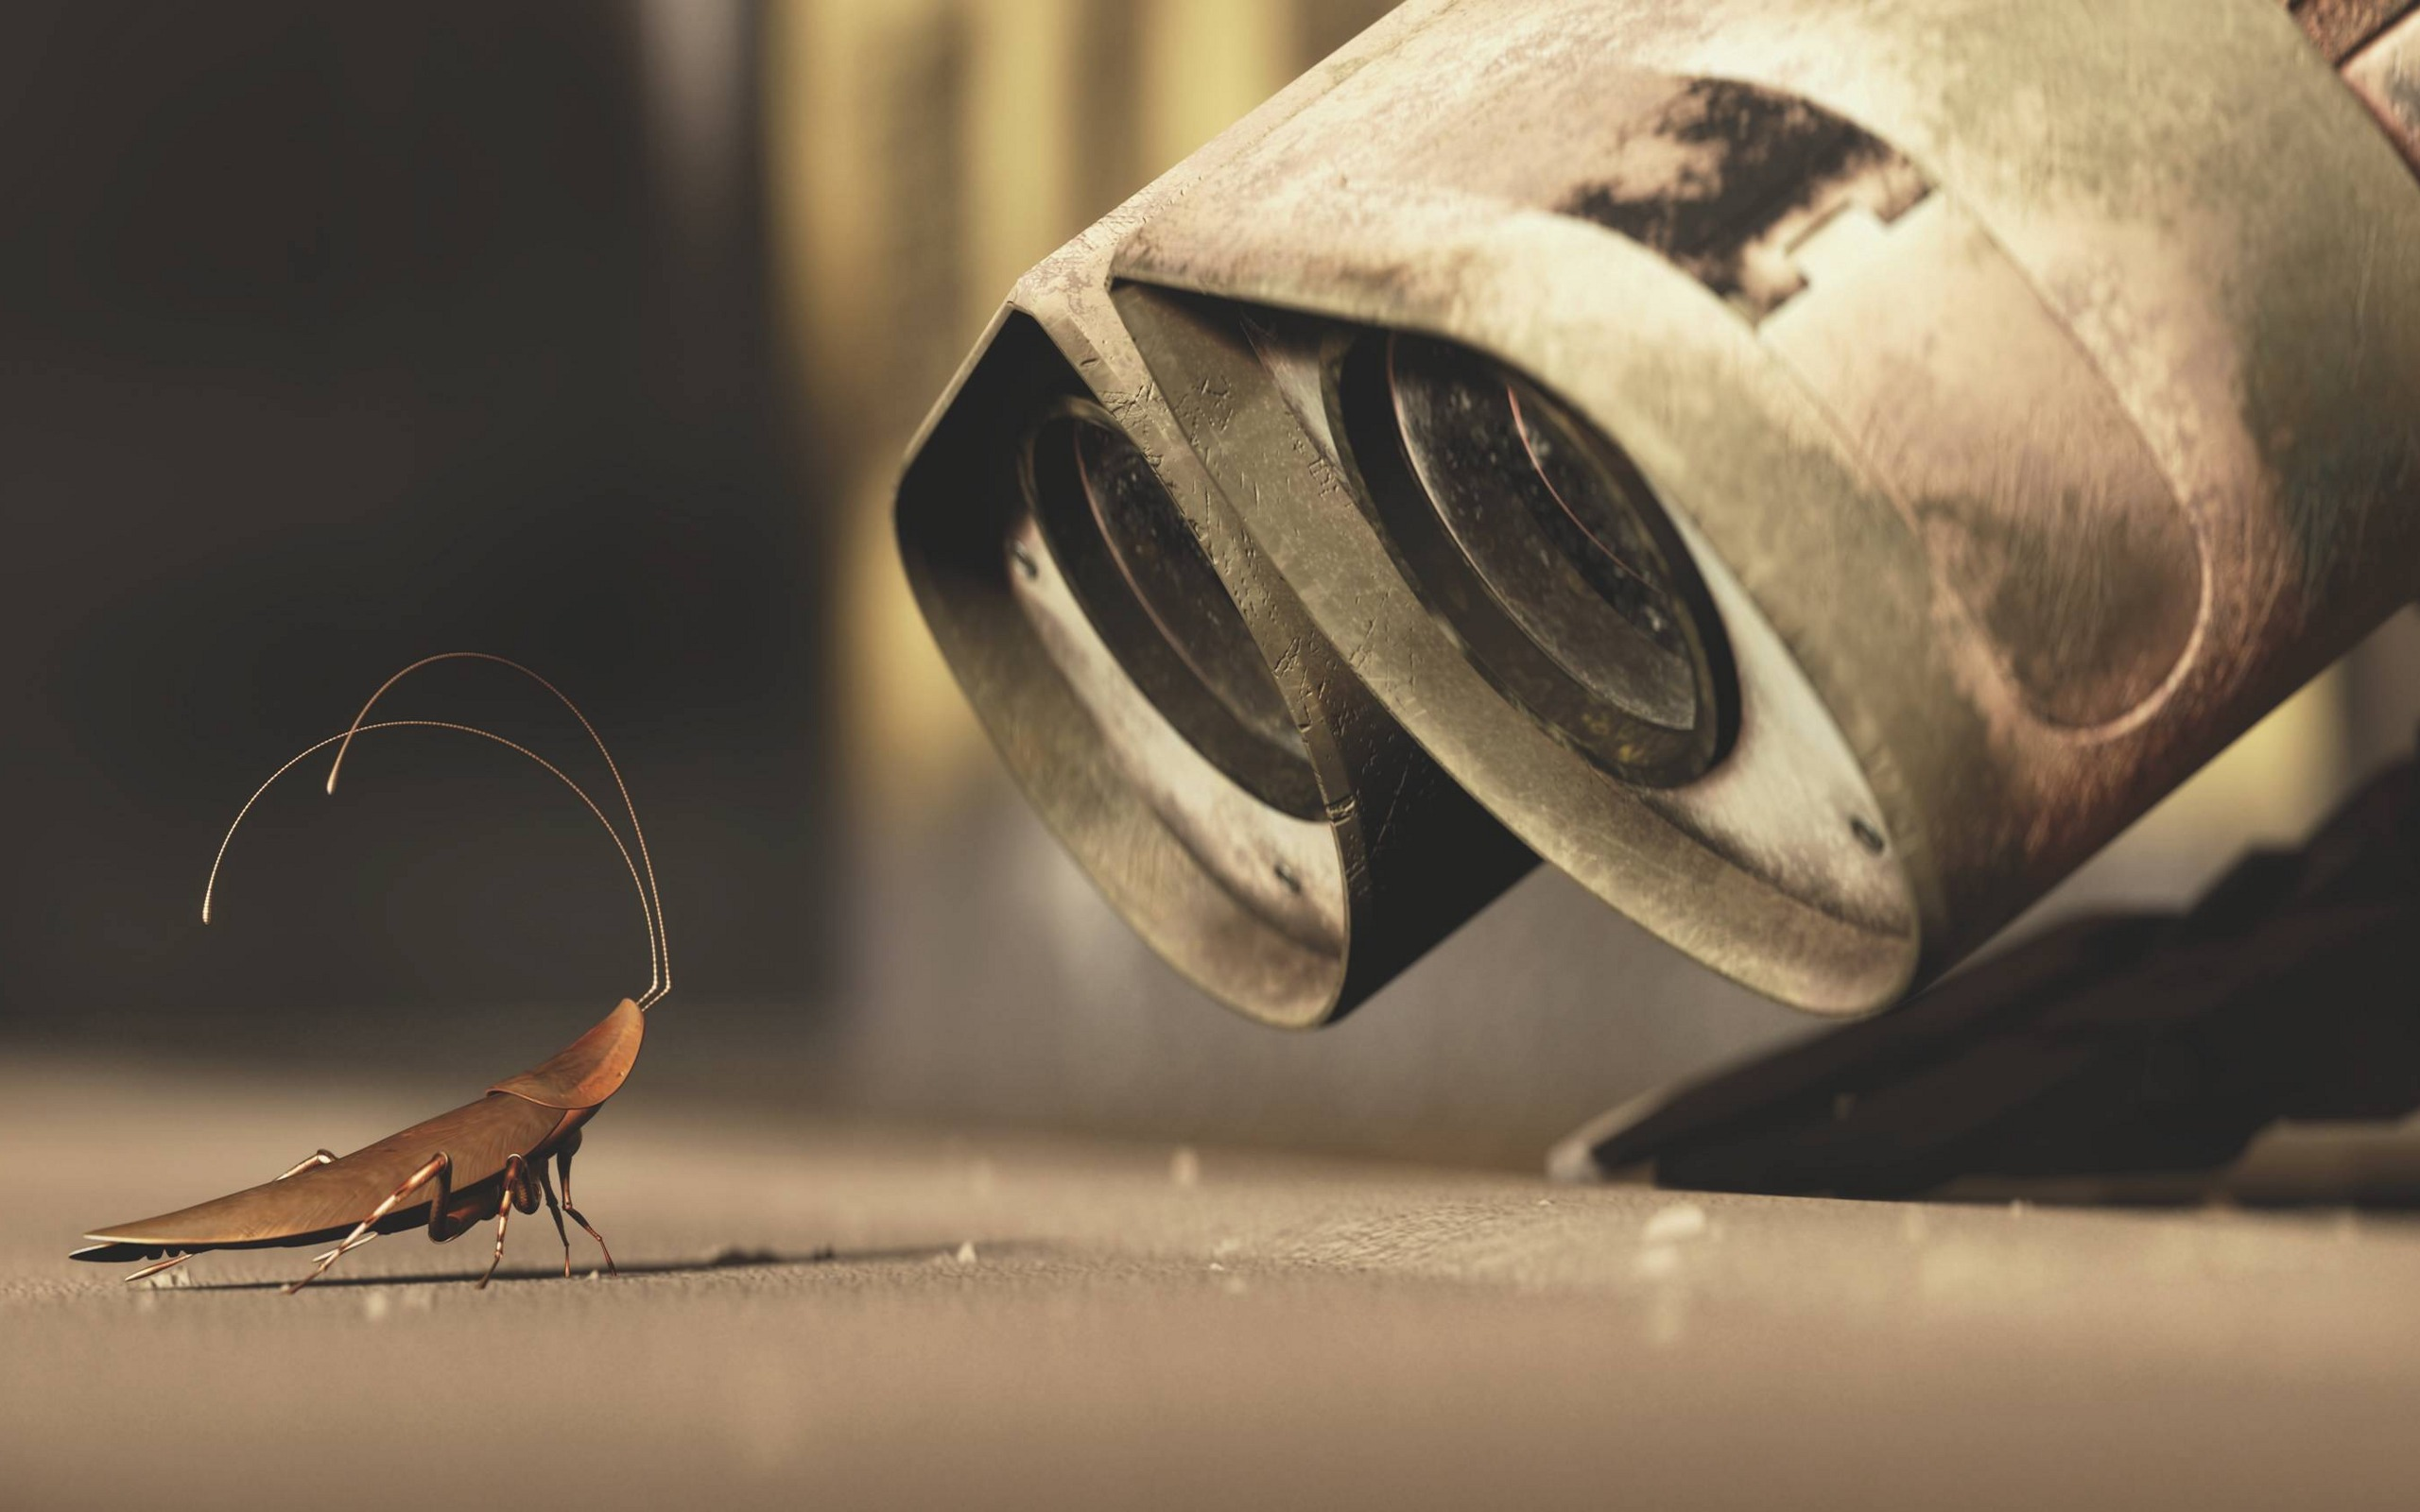 72 Wall    E HD Wallpapers   Background Images   Wallpaper Abyss HD Wallpaper   Background Image ID 83015